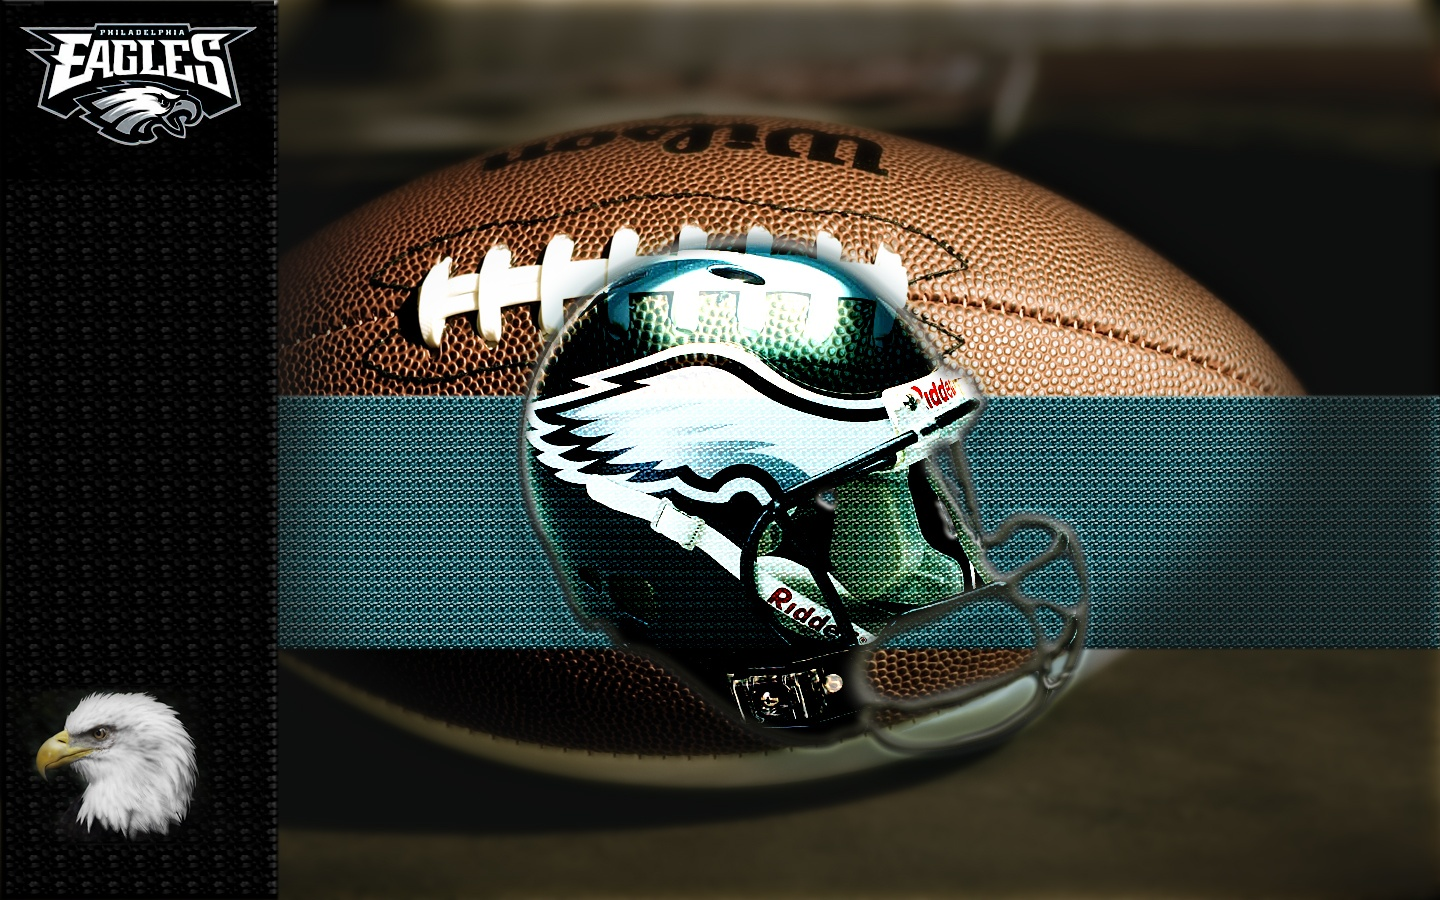 Philadelphia Eagles Hd Wallpapers Pictures Hd Wallpapers